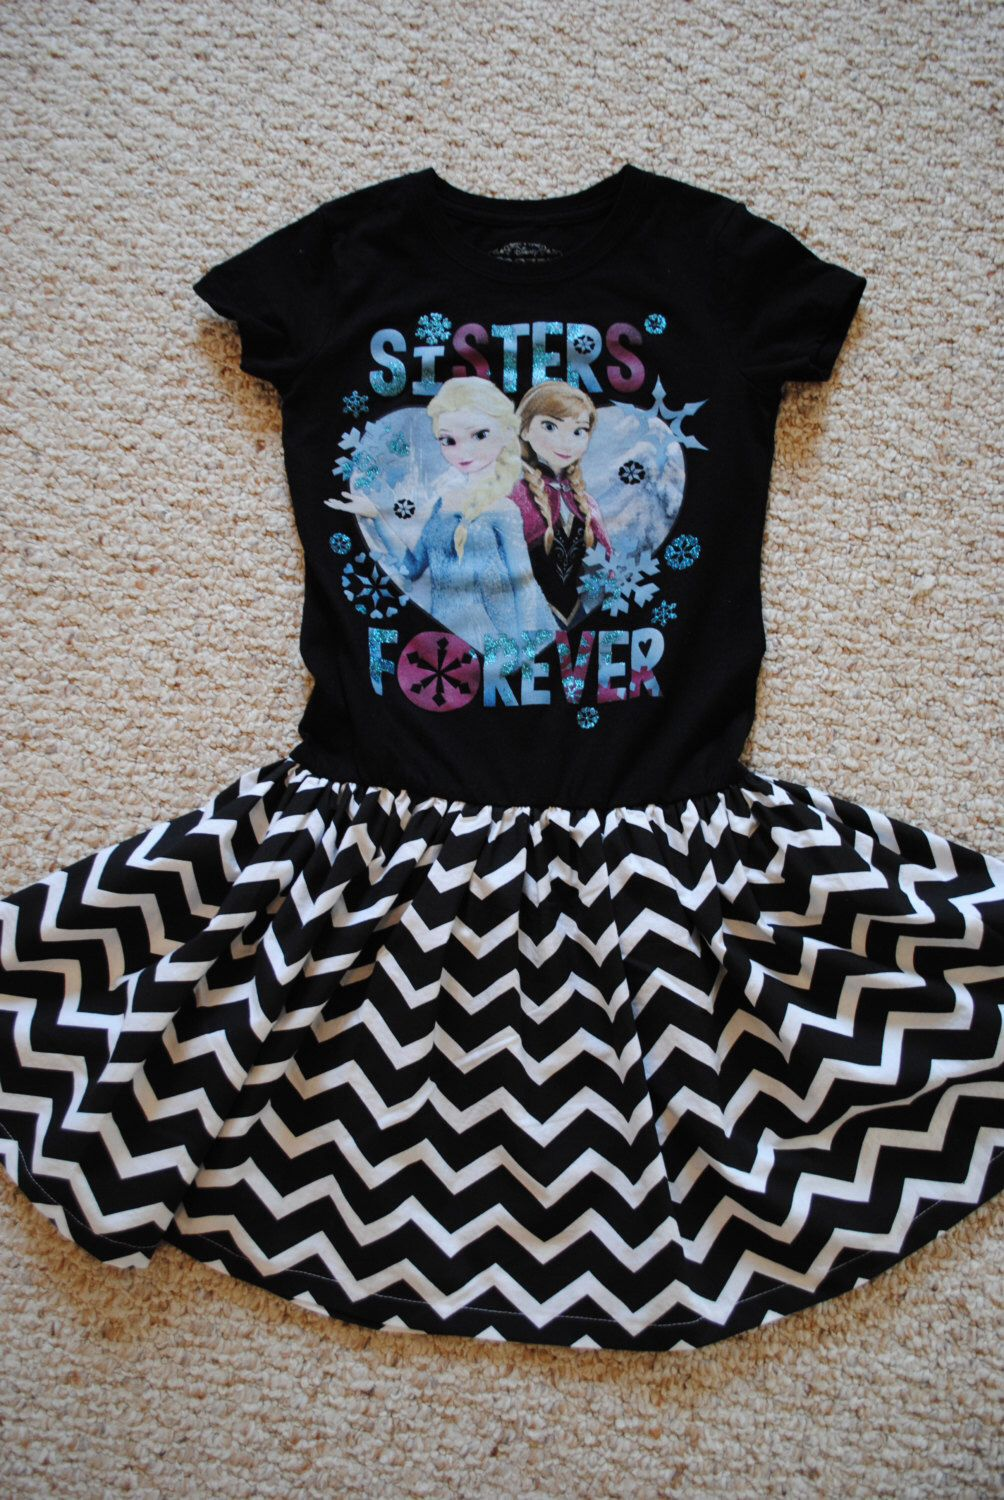 Black t shirt dress etsy - Girls Frozen Chevron Dress Disney Queen Elsa Princess Anna Black White T